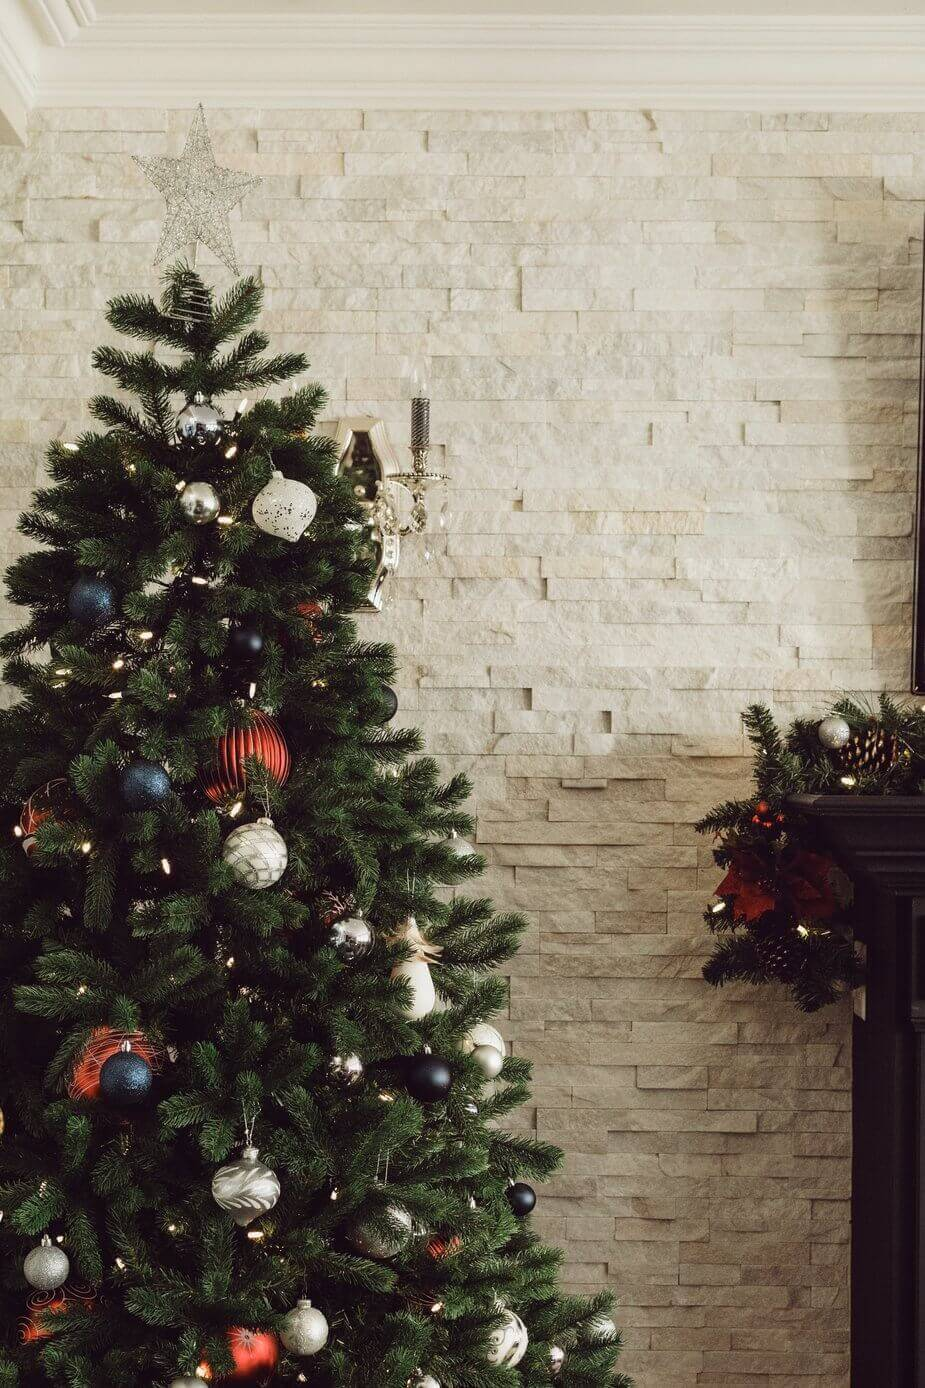 Professionally Decorated Christmas Tree in Red, White & Blue understated baubles with cream brick background